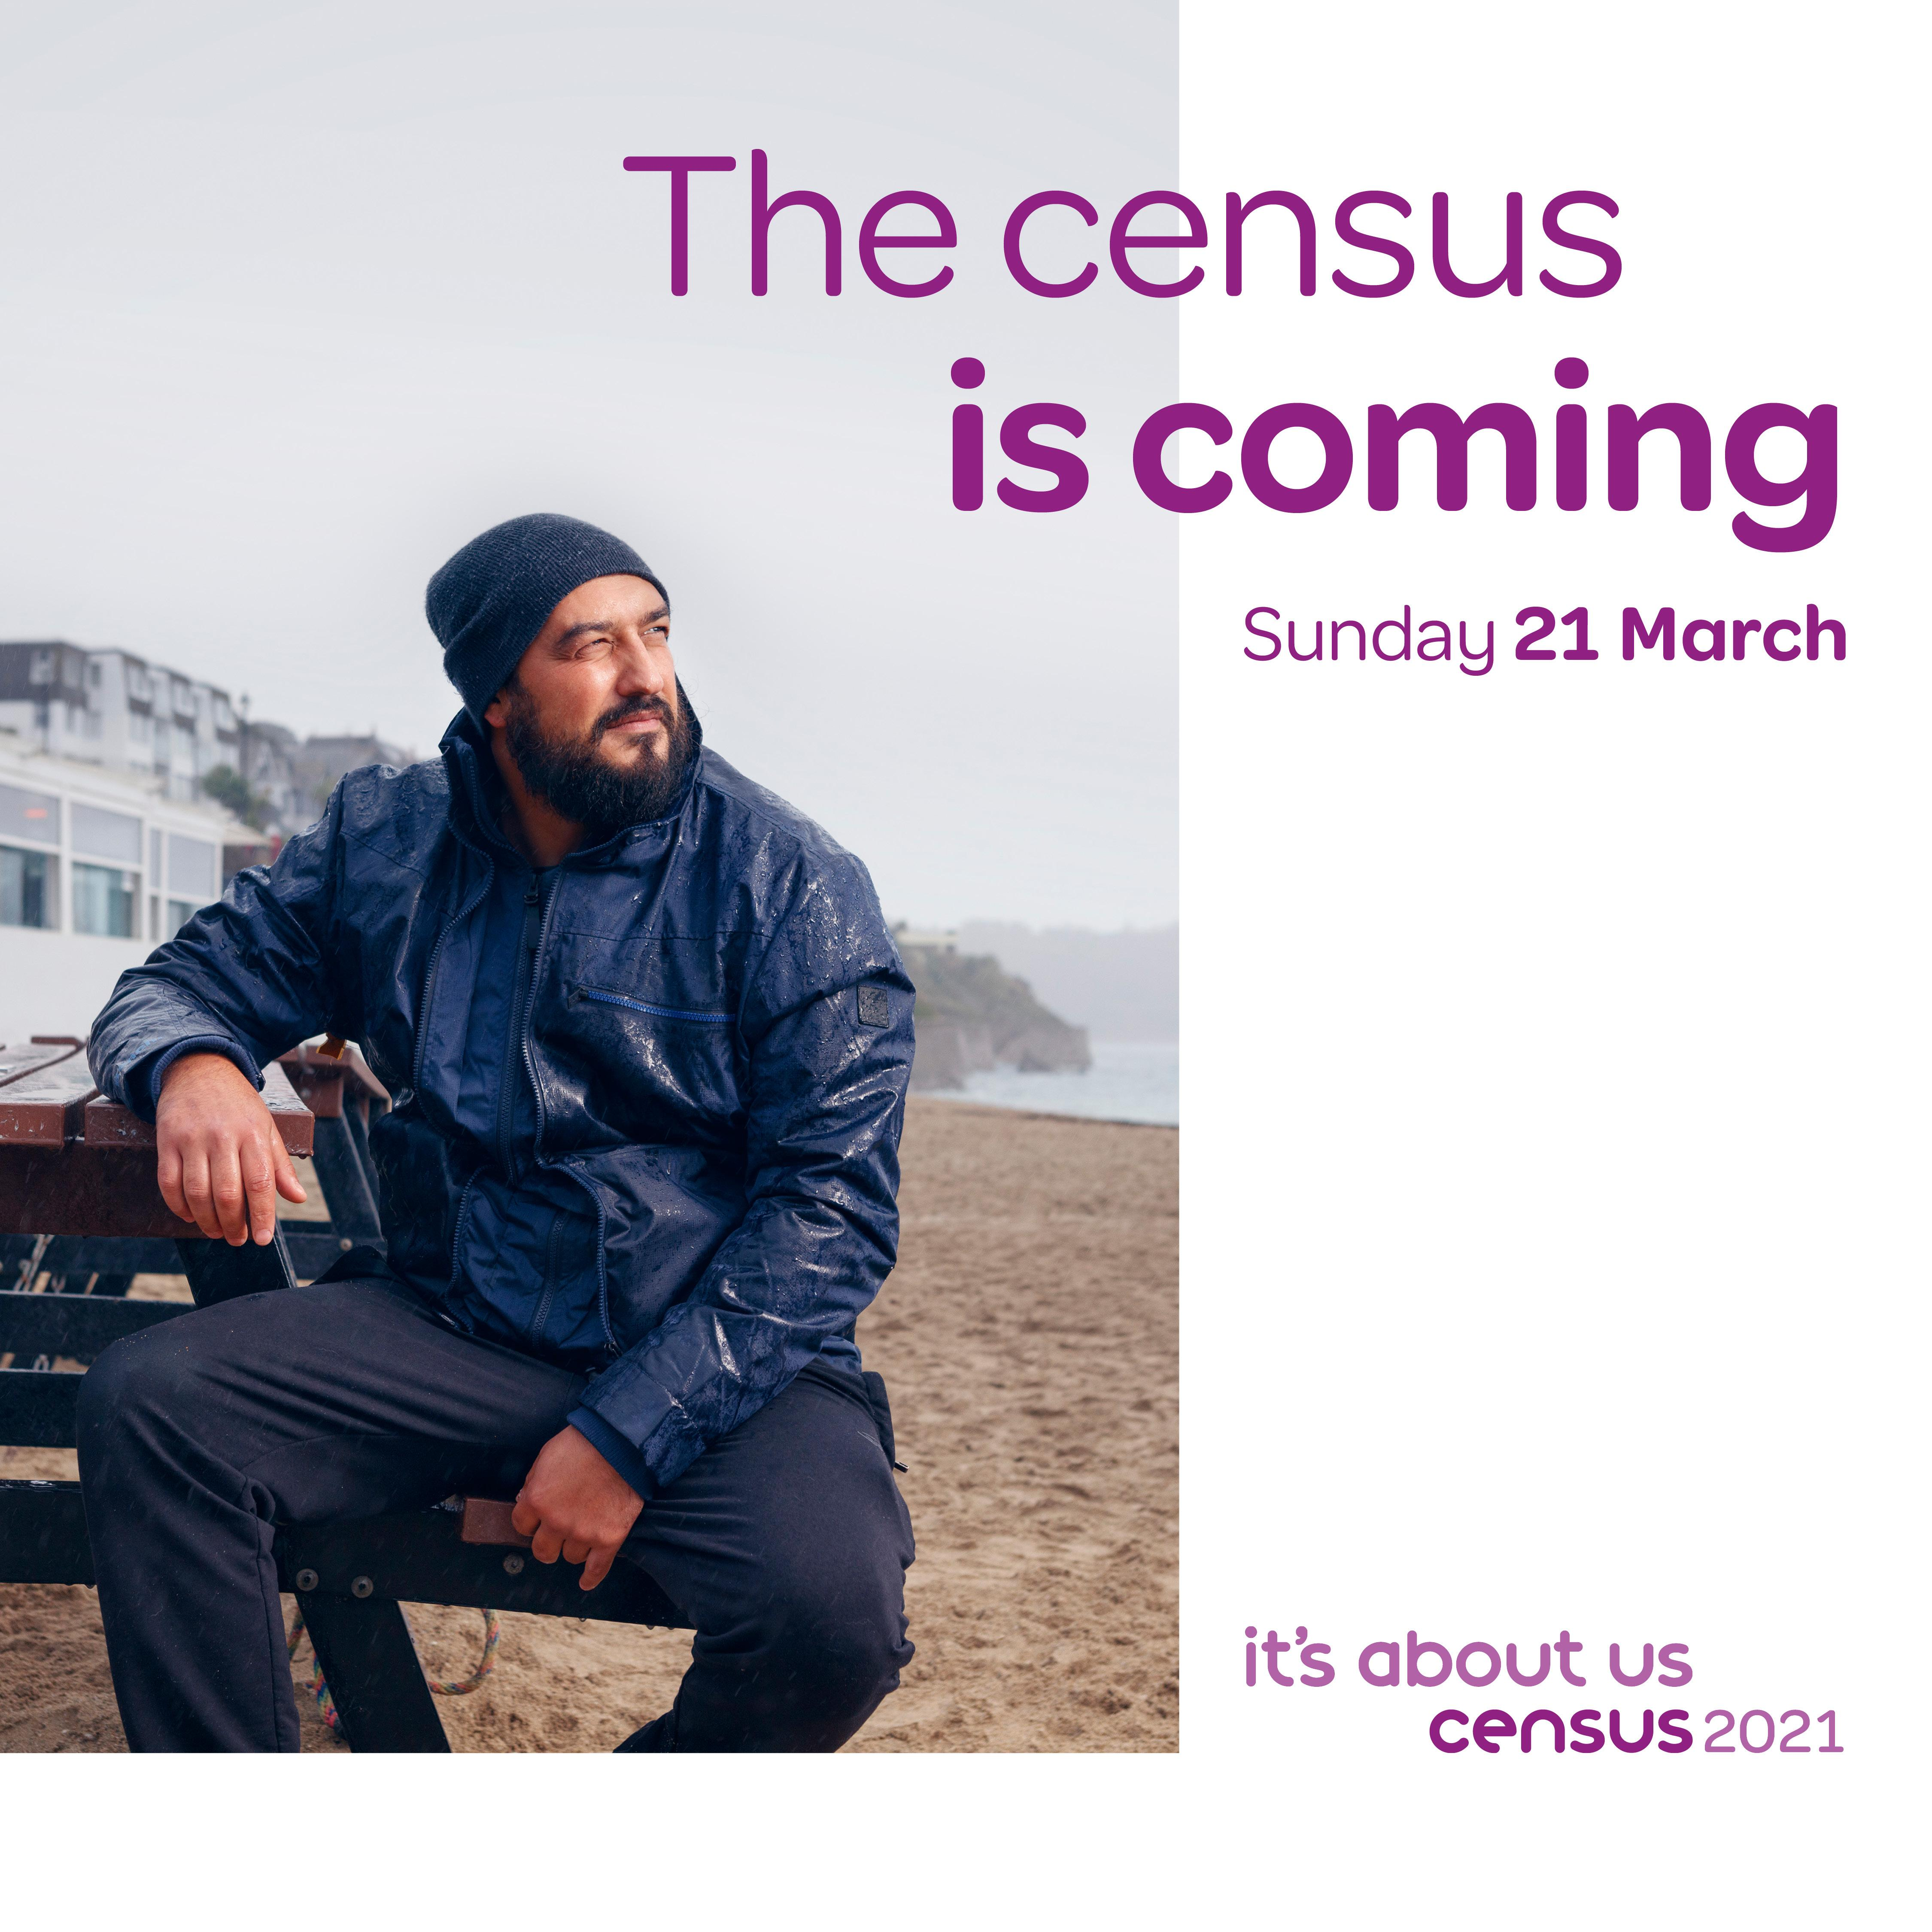 The Census is coming poster